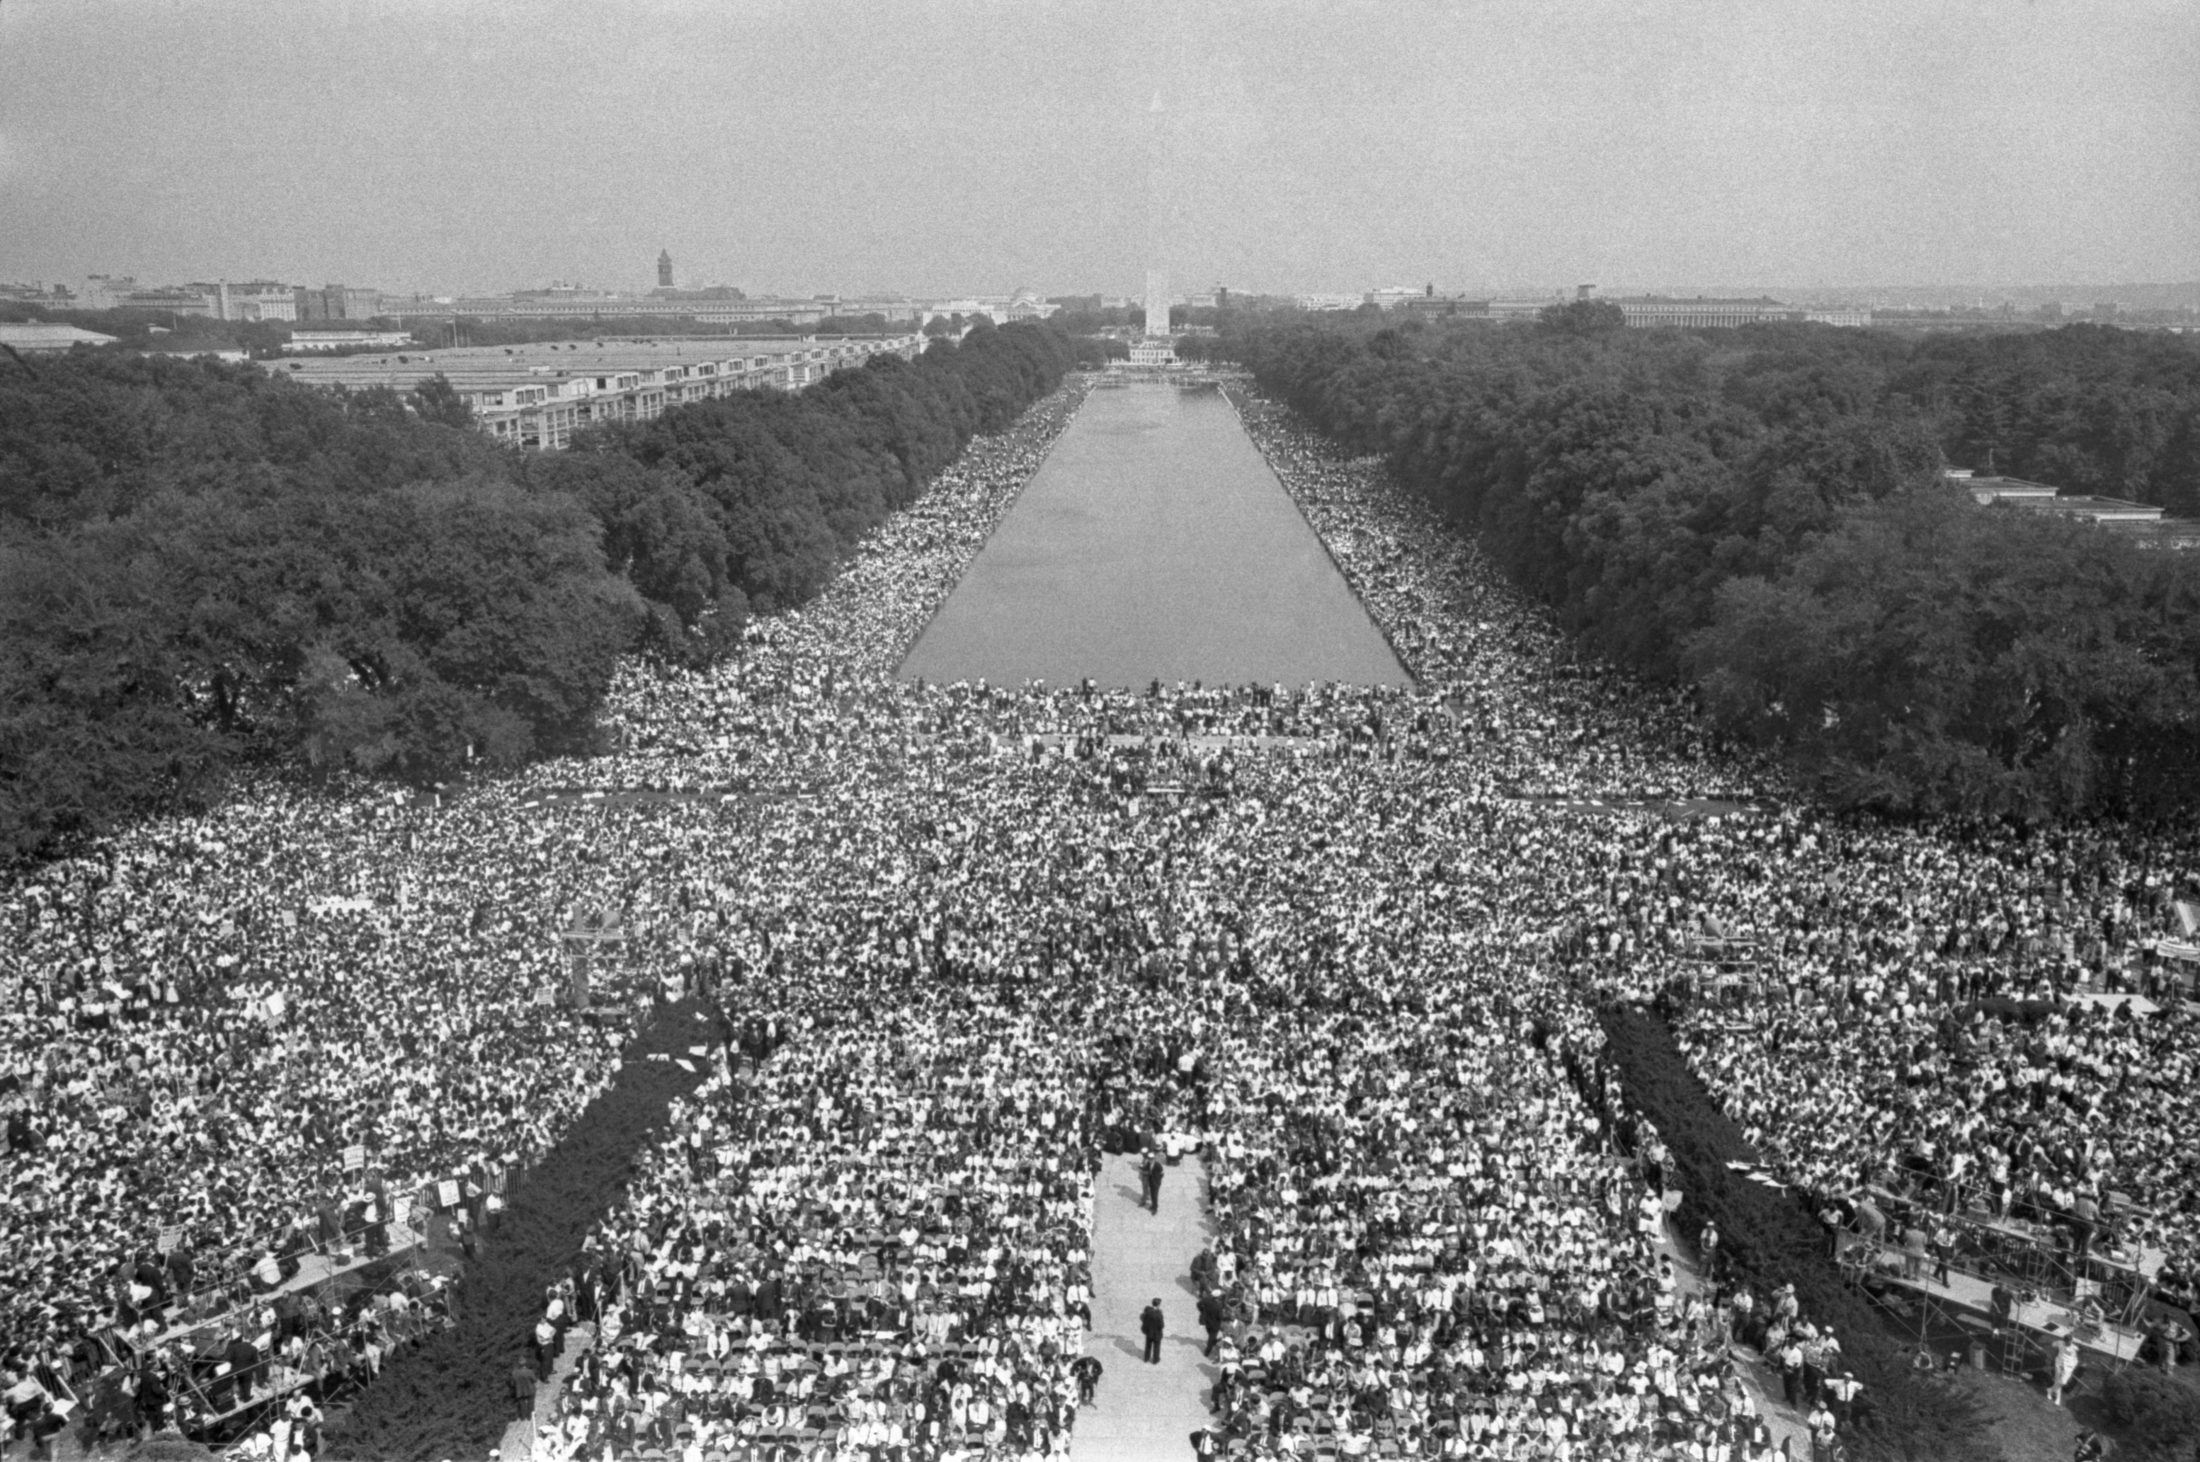 march washington king luther lincoln martin memorial 1963 pool front participants jr taken shows getty jammed area giving ifill gwen